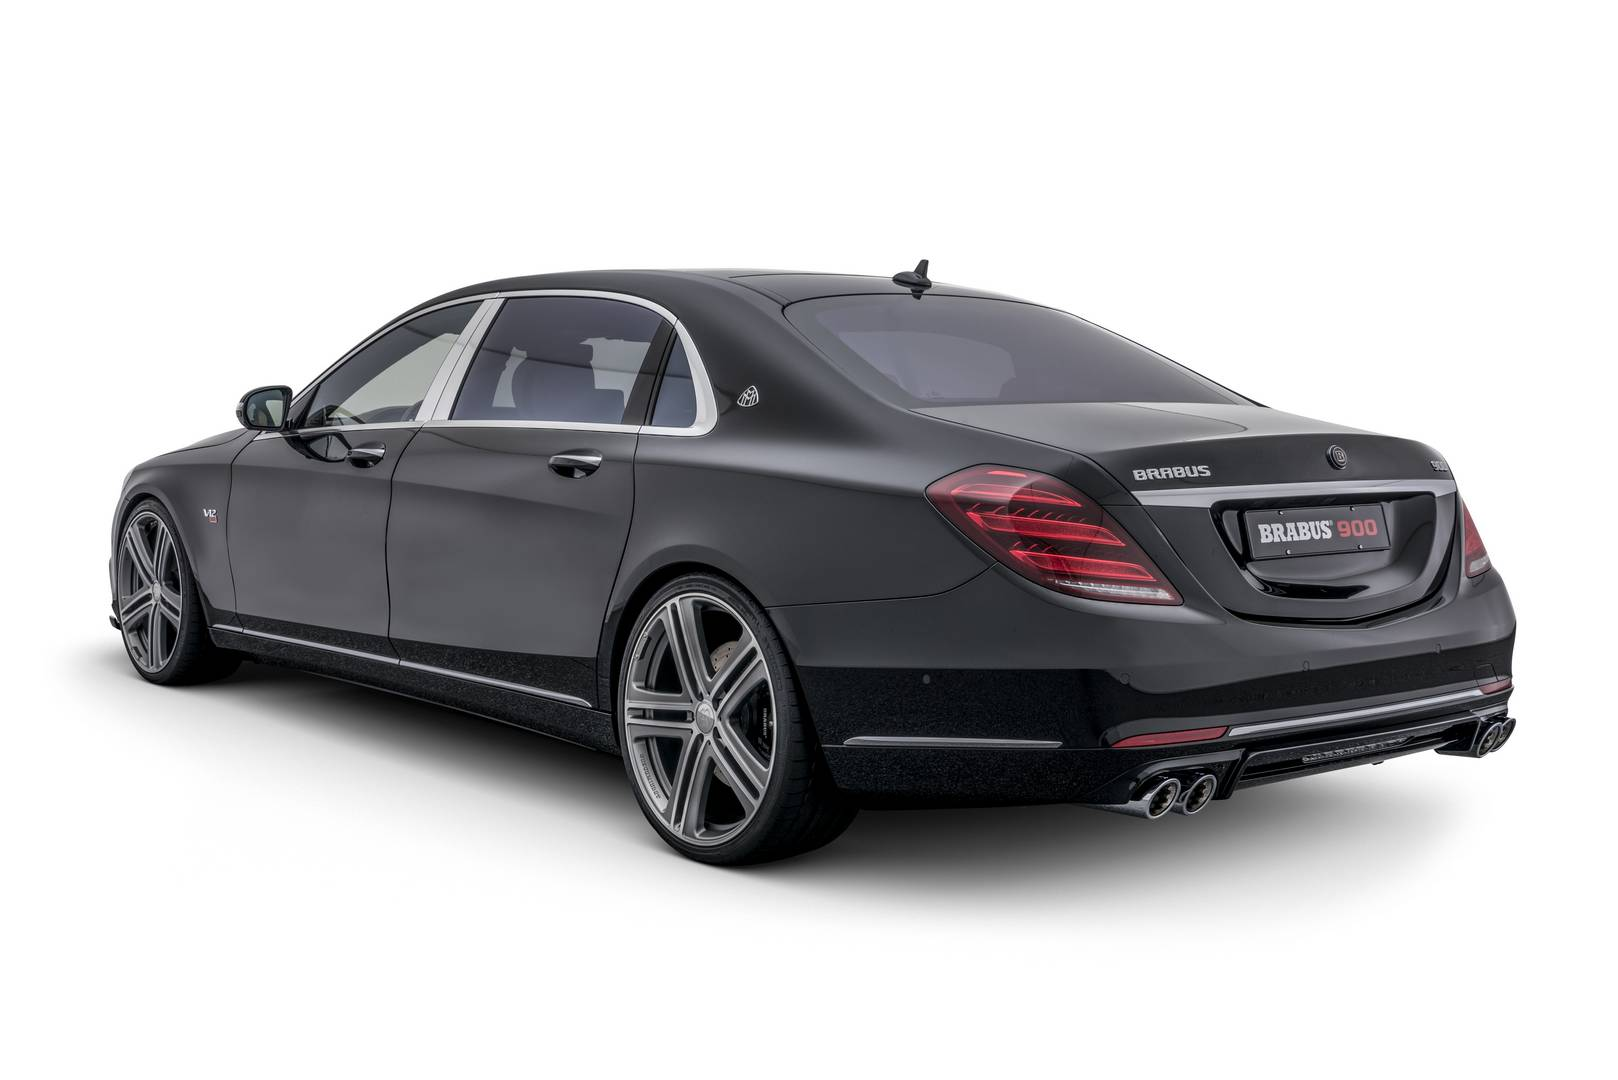 official: brabus rocket 900 based on mercedes-maybach s650 - gtspirit